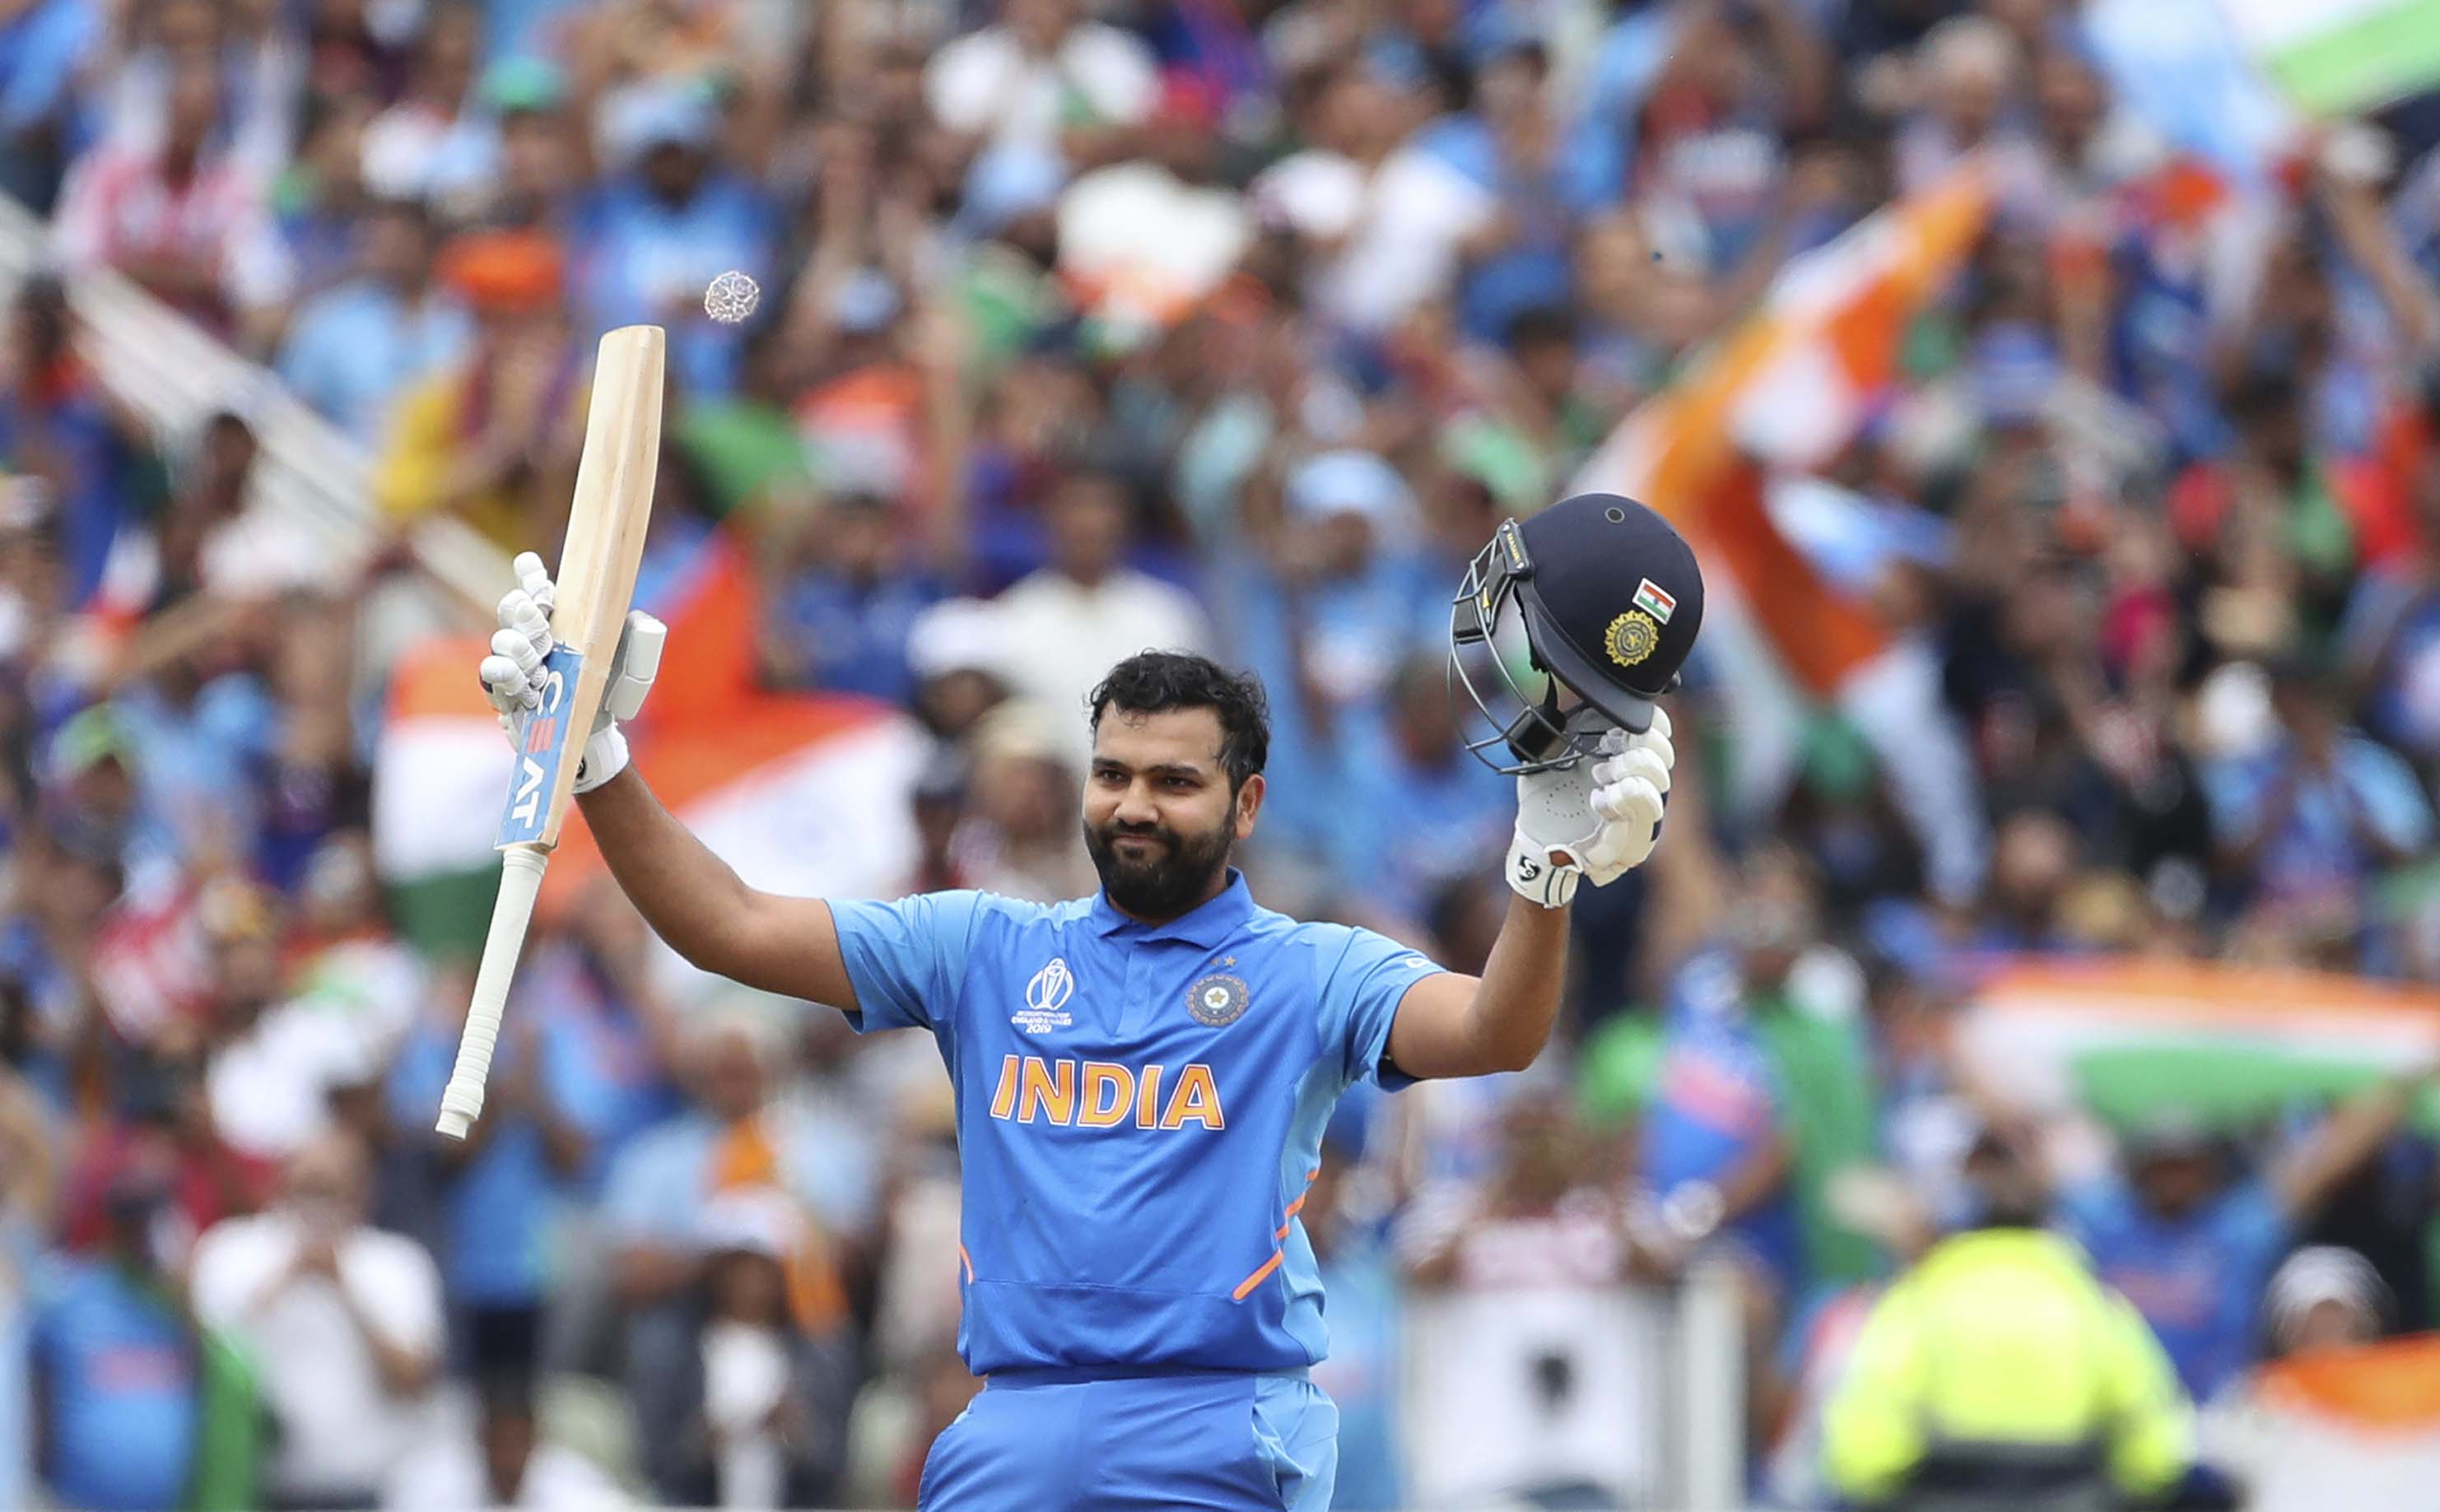 Never thought I'll slam a double hundred in ODIs: Rohit Sharma tells R Ashwin